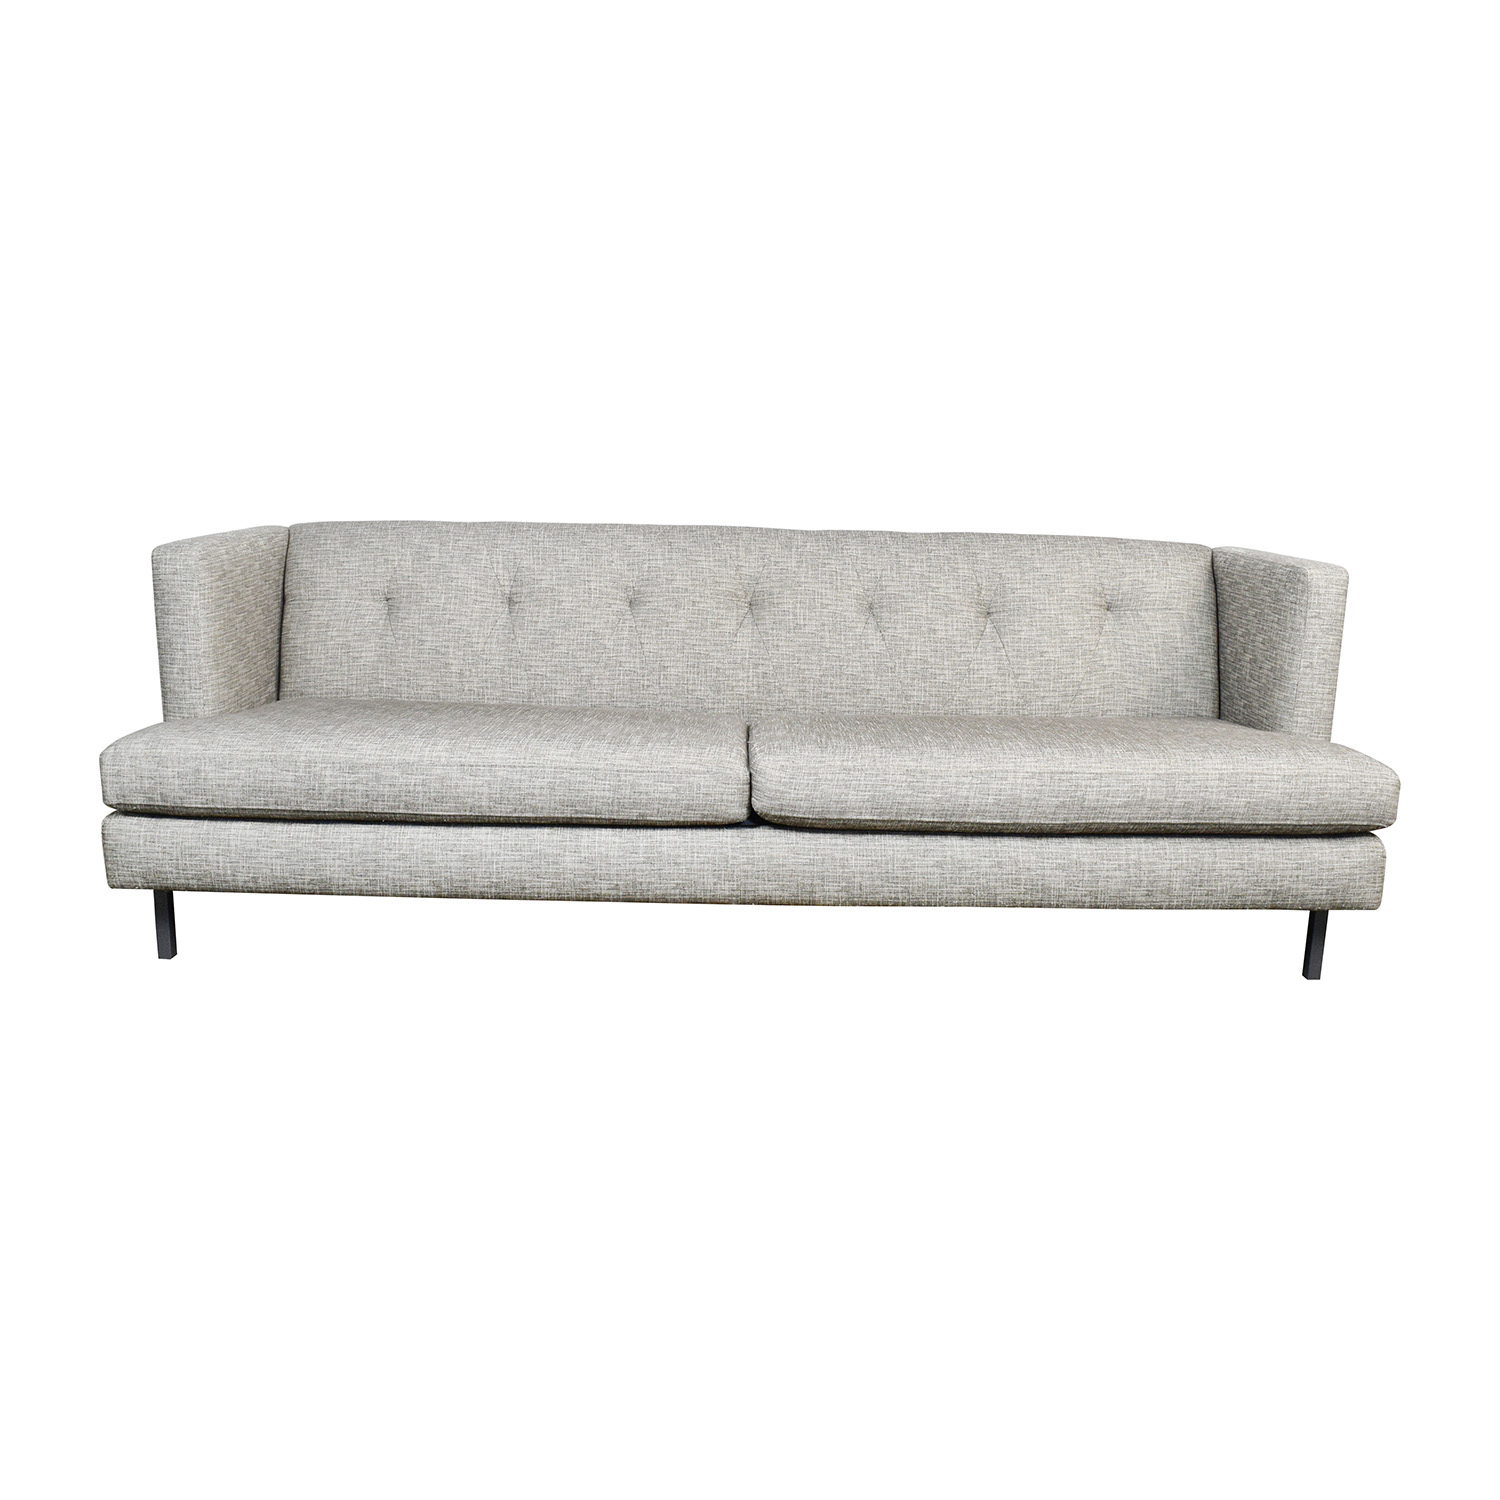 shop CB2 Avec Gray Tufted Sofa CB2